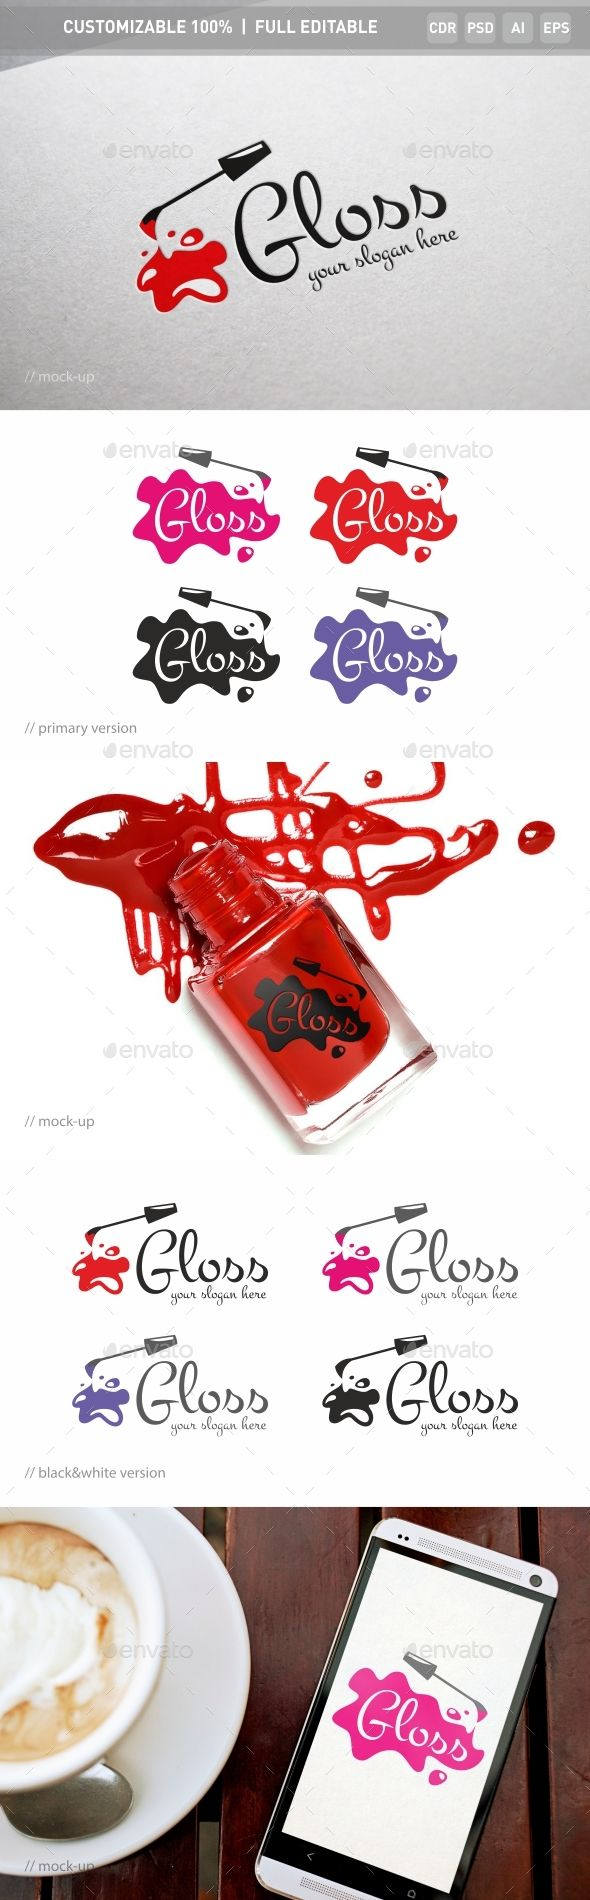 Gloss Nail Logo Template — Photoshop PSD #nail polish #woman • Available here → https://graphicriver.net/item/gloss-nail-logo-template/16876183?ref=pxcr